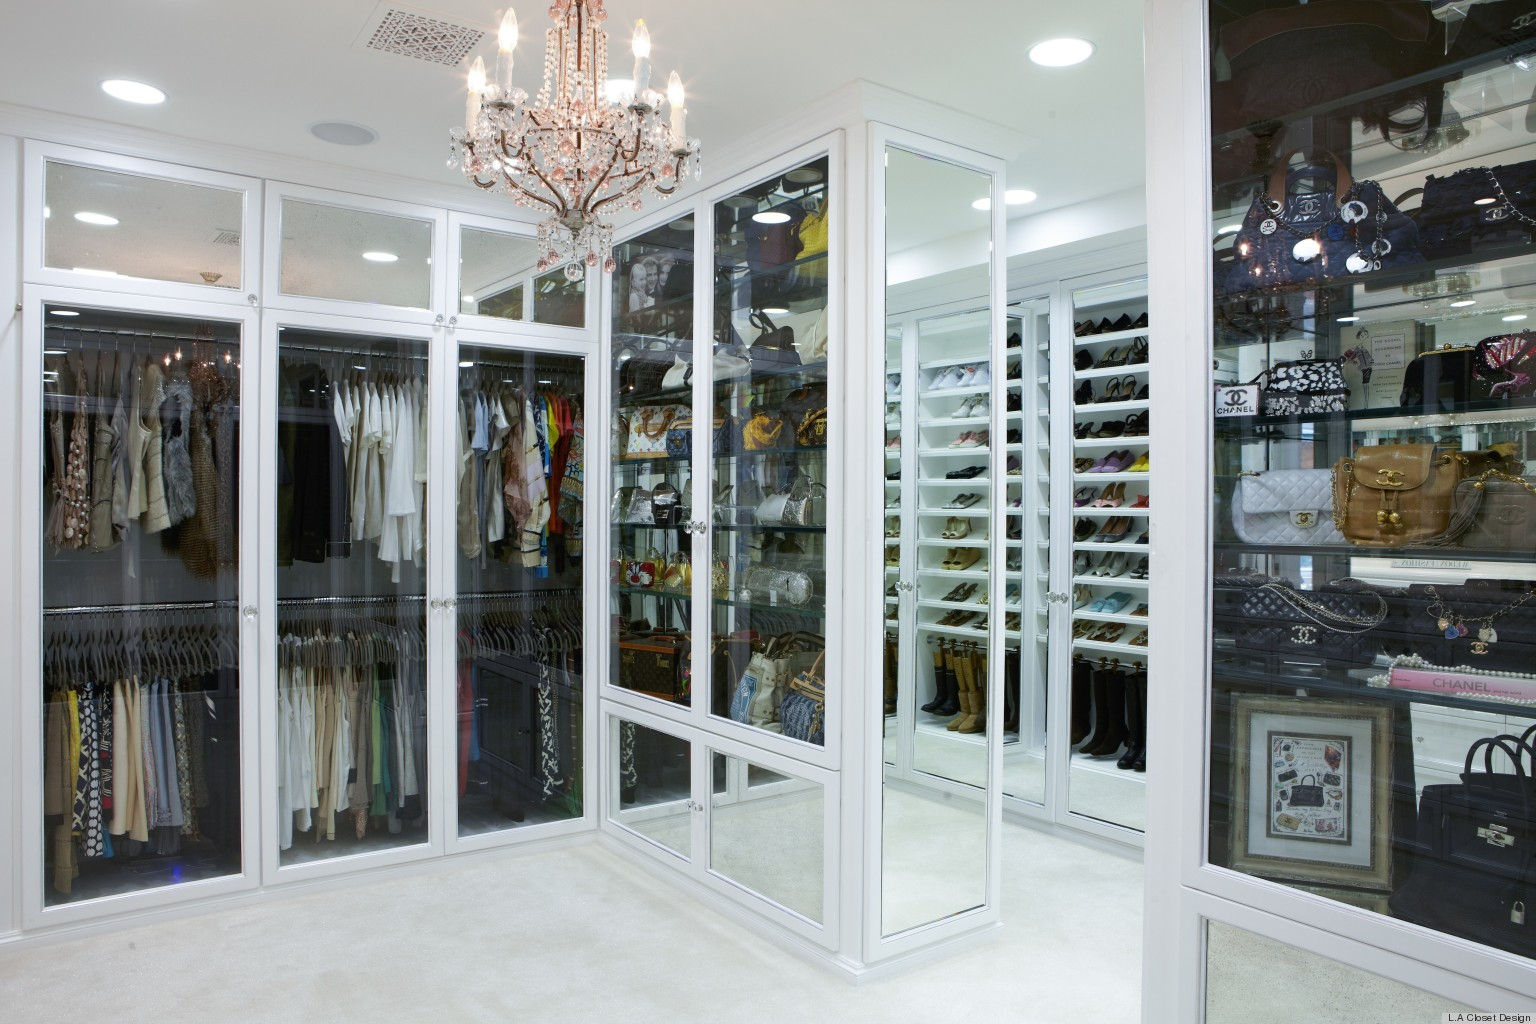 Rochelle Maizes 100000 Closet Designed By Lisa Adams Has Us Swooning PHOTOS